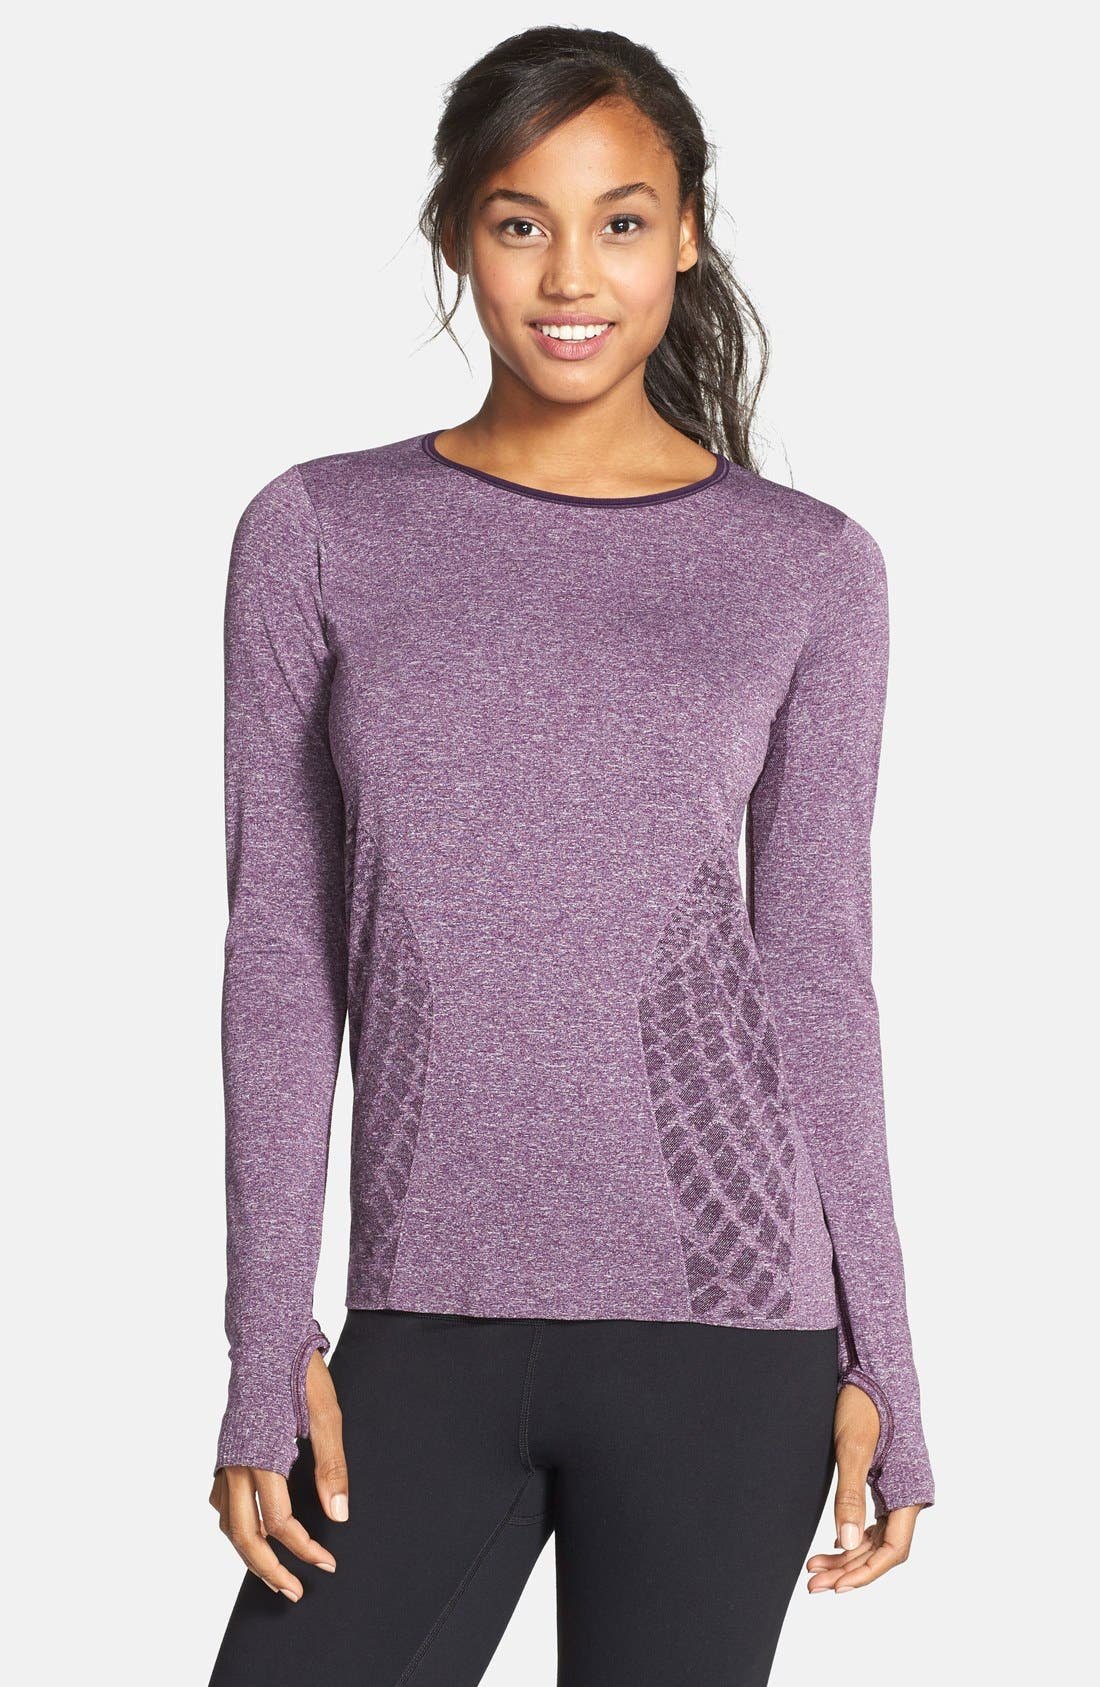 Alternate Image 1 Selected - New Balance 'Made for Movement' Seamless Long Sleeve